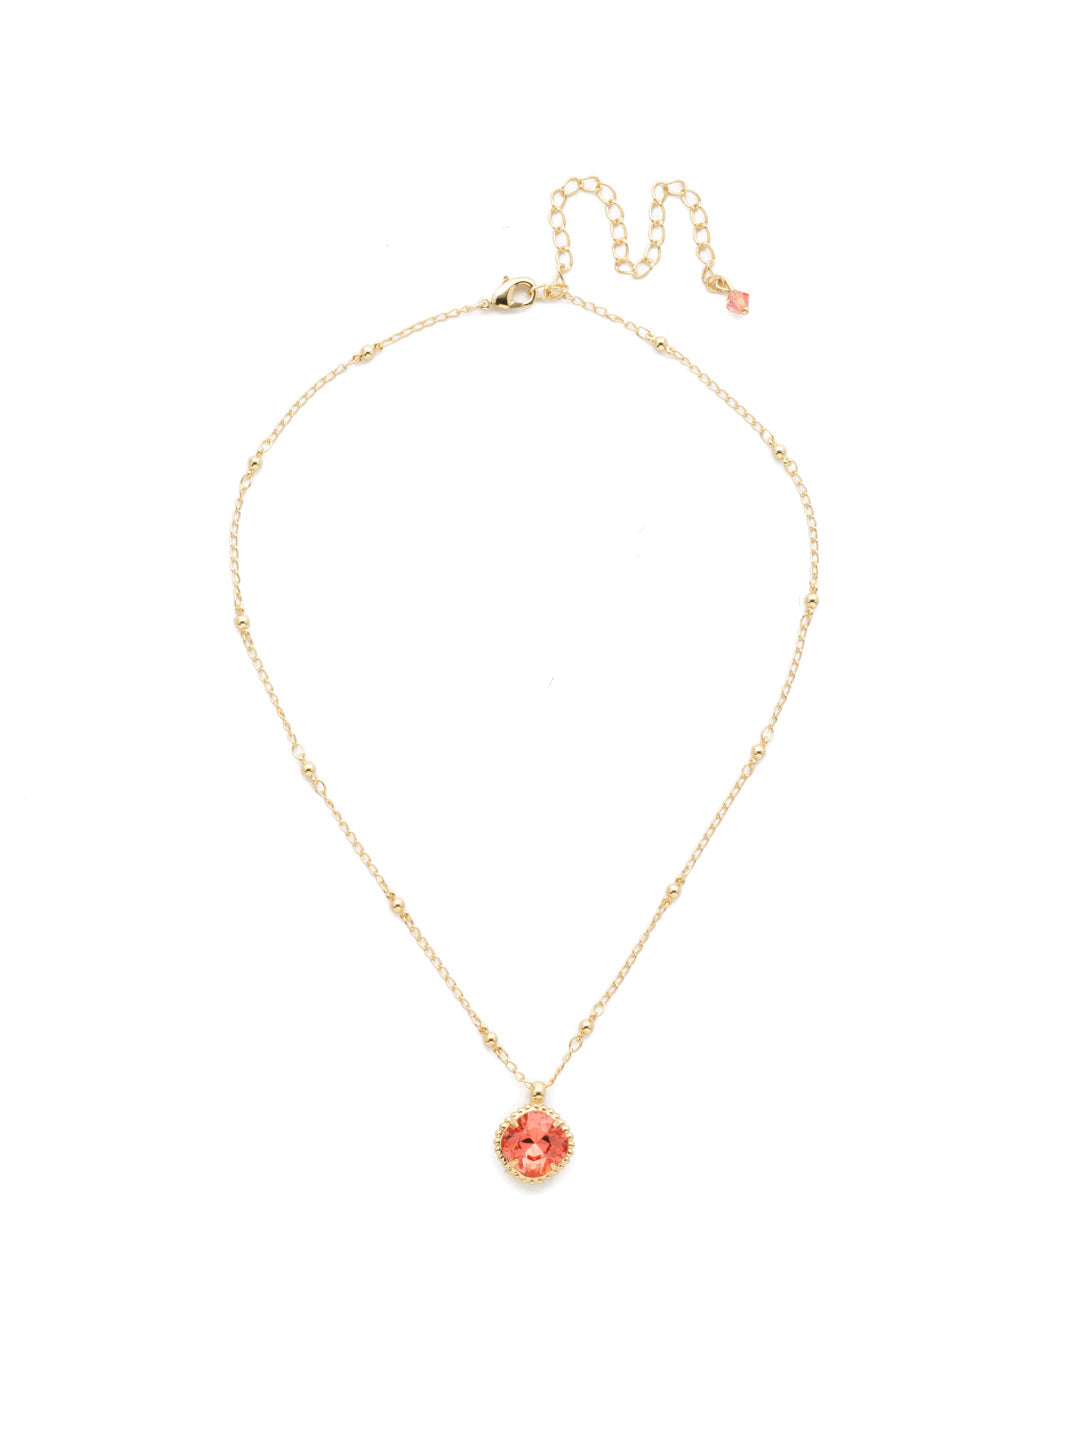 Cushion-Cut Pendant Necklace - NDS50BGCRL